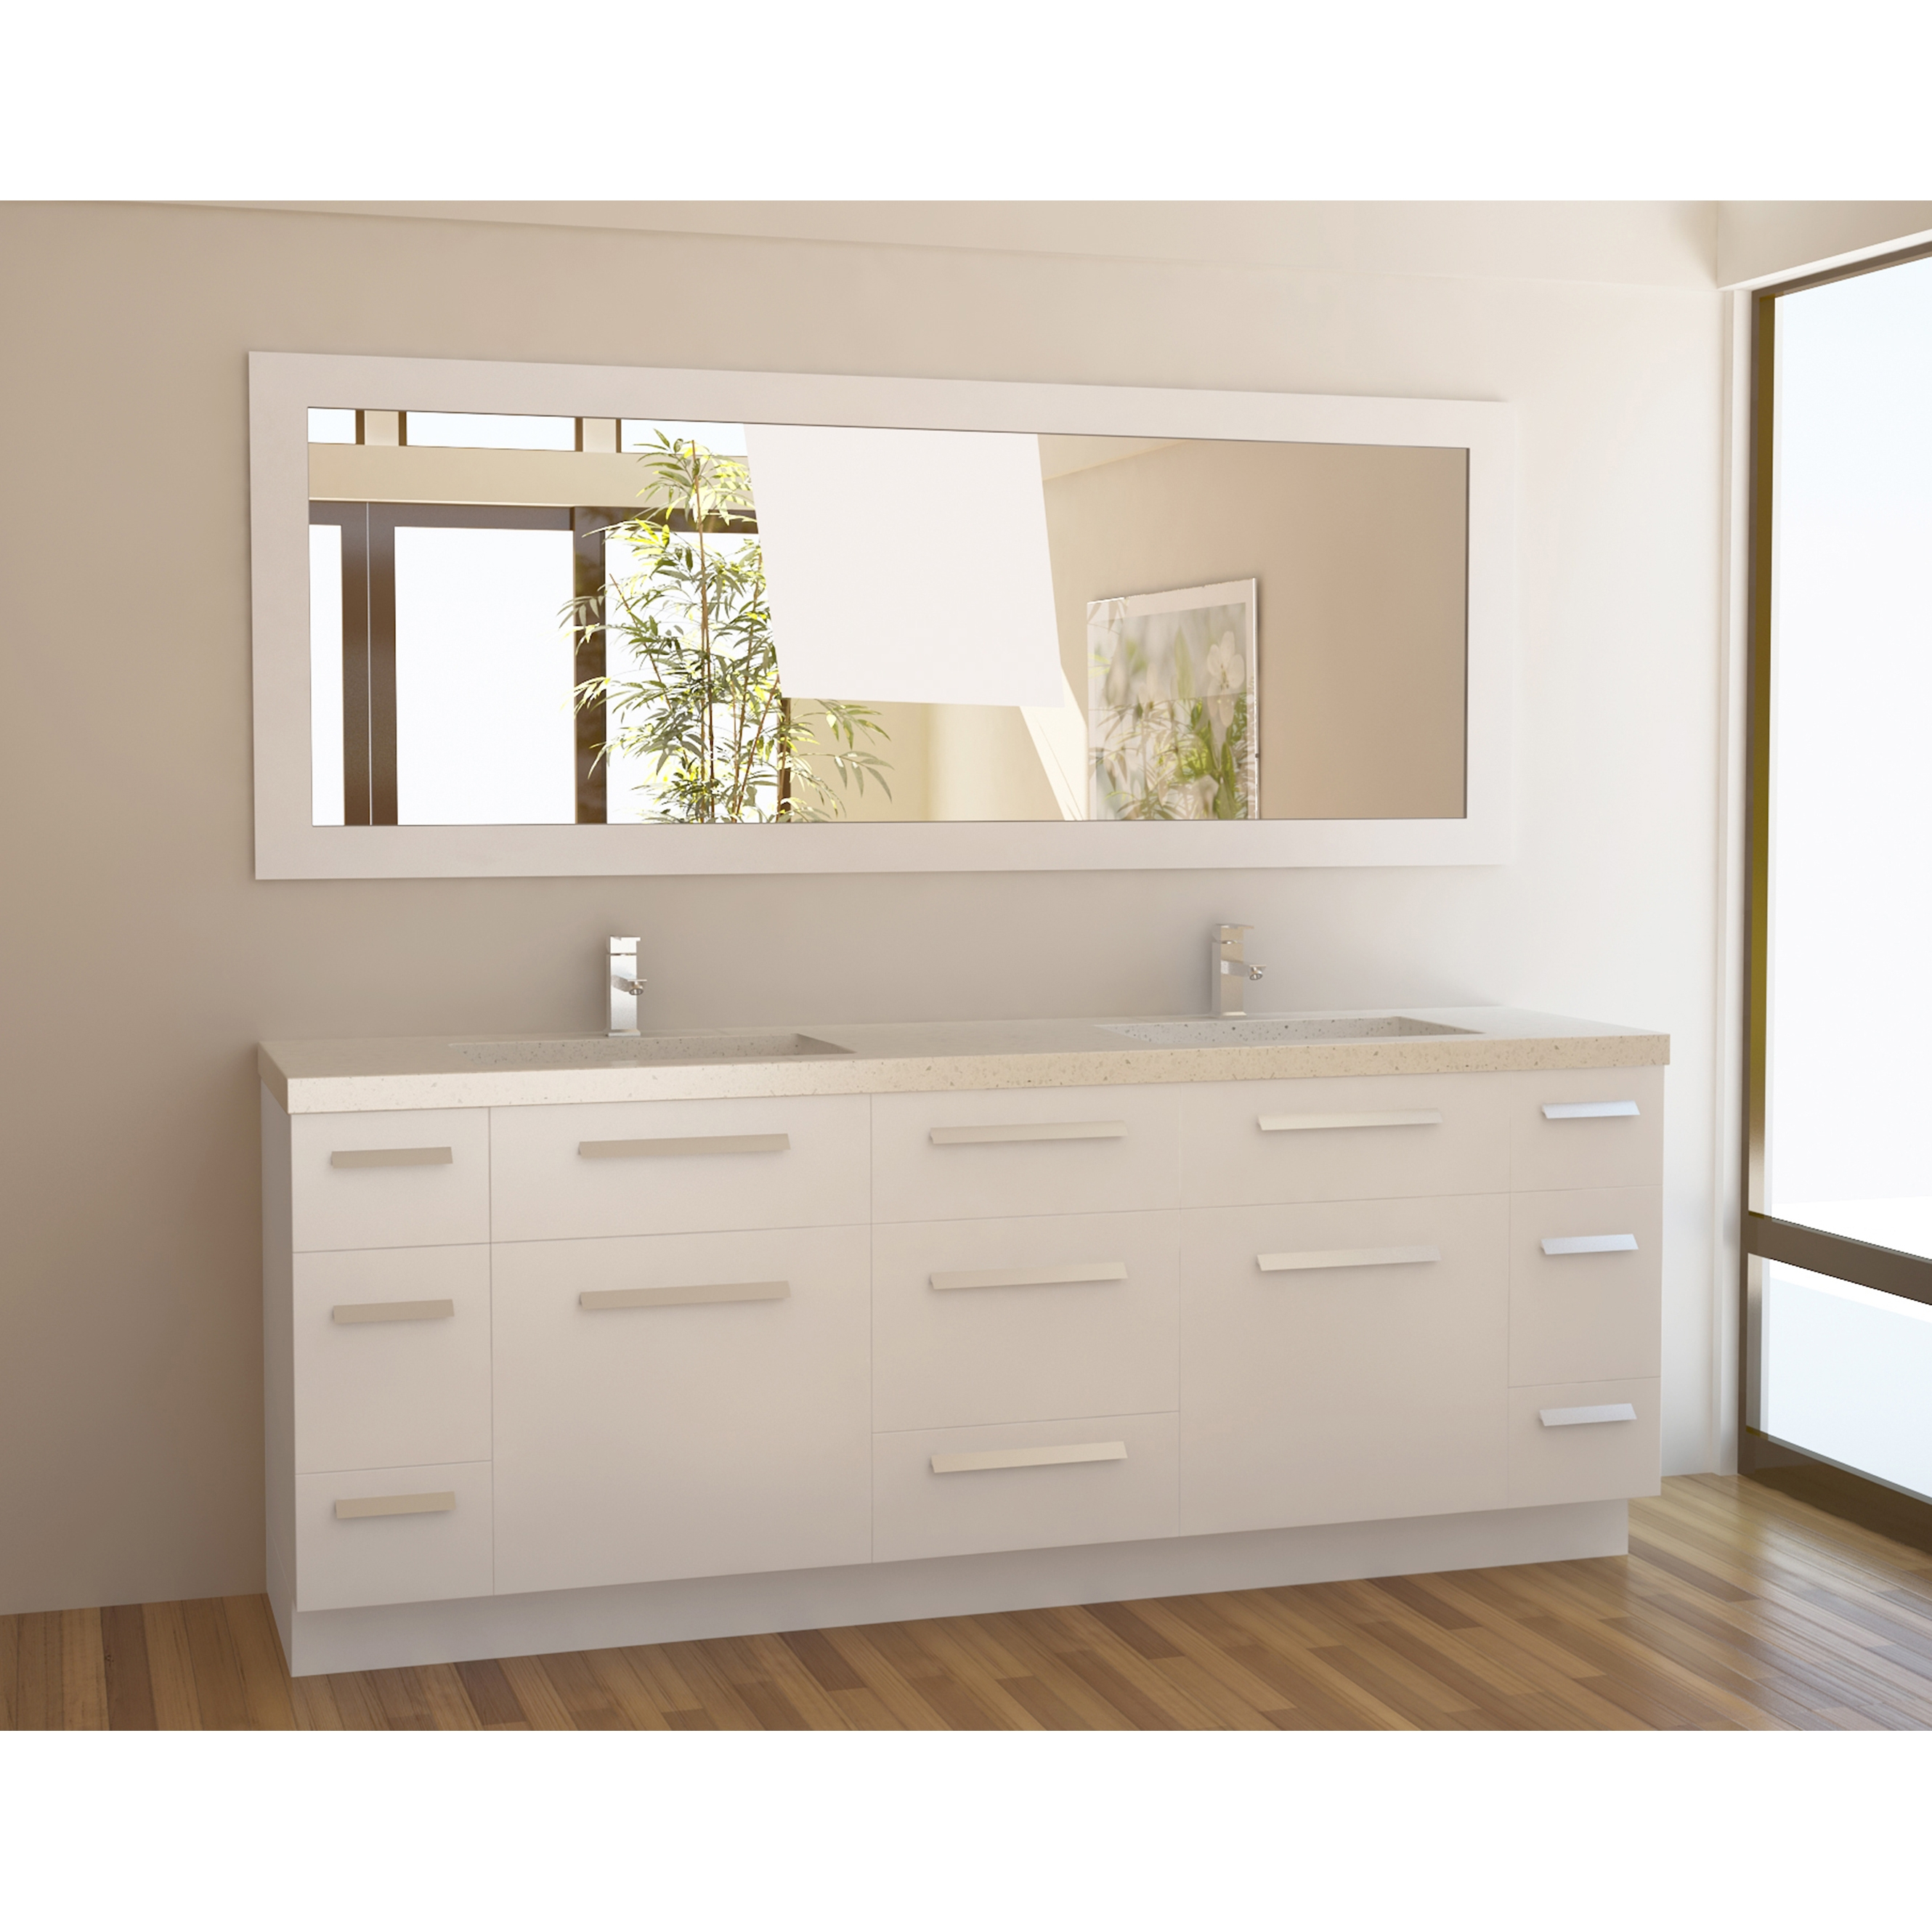 Bathroom Vanity Cabinet 84